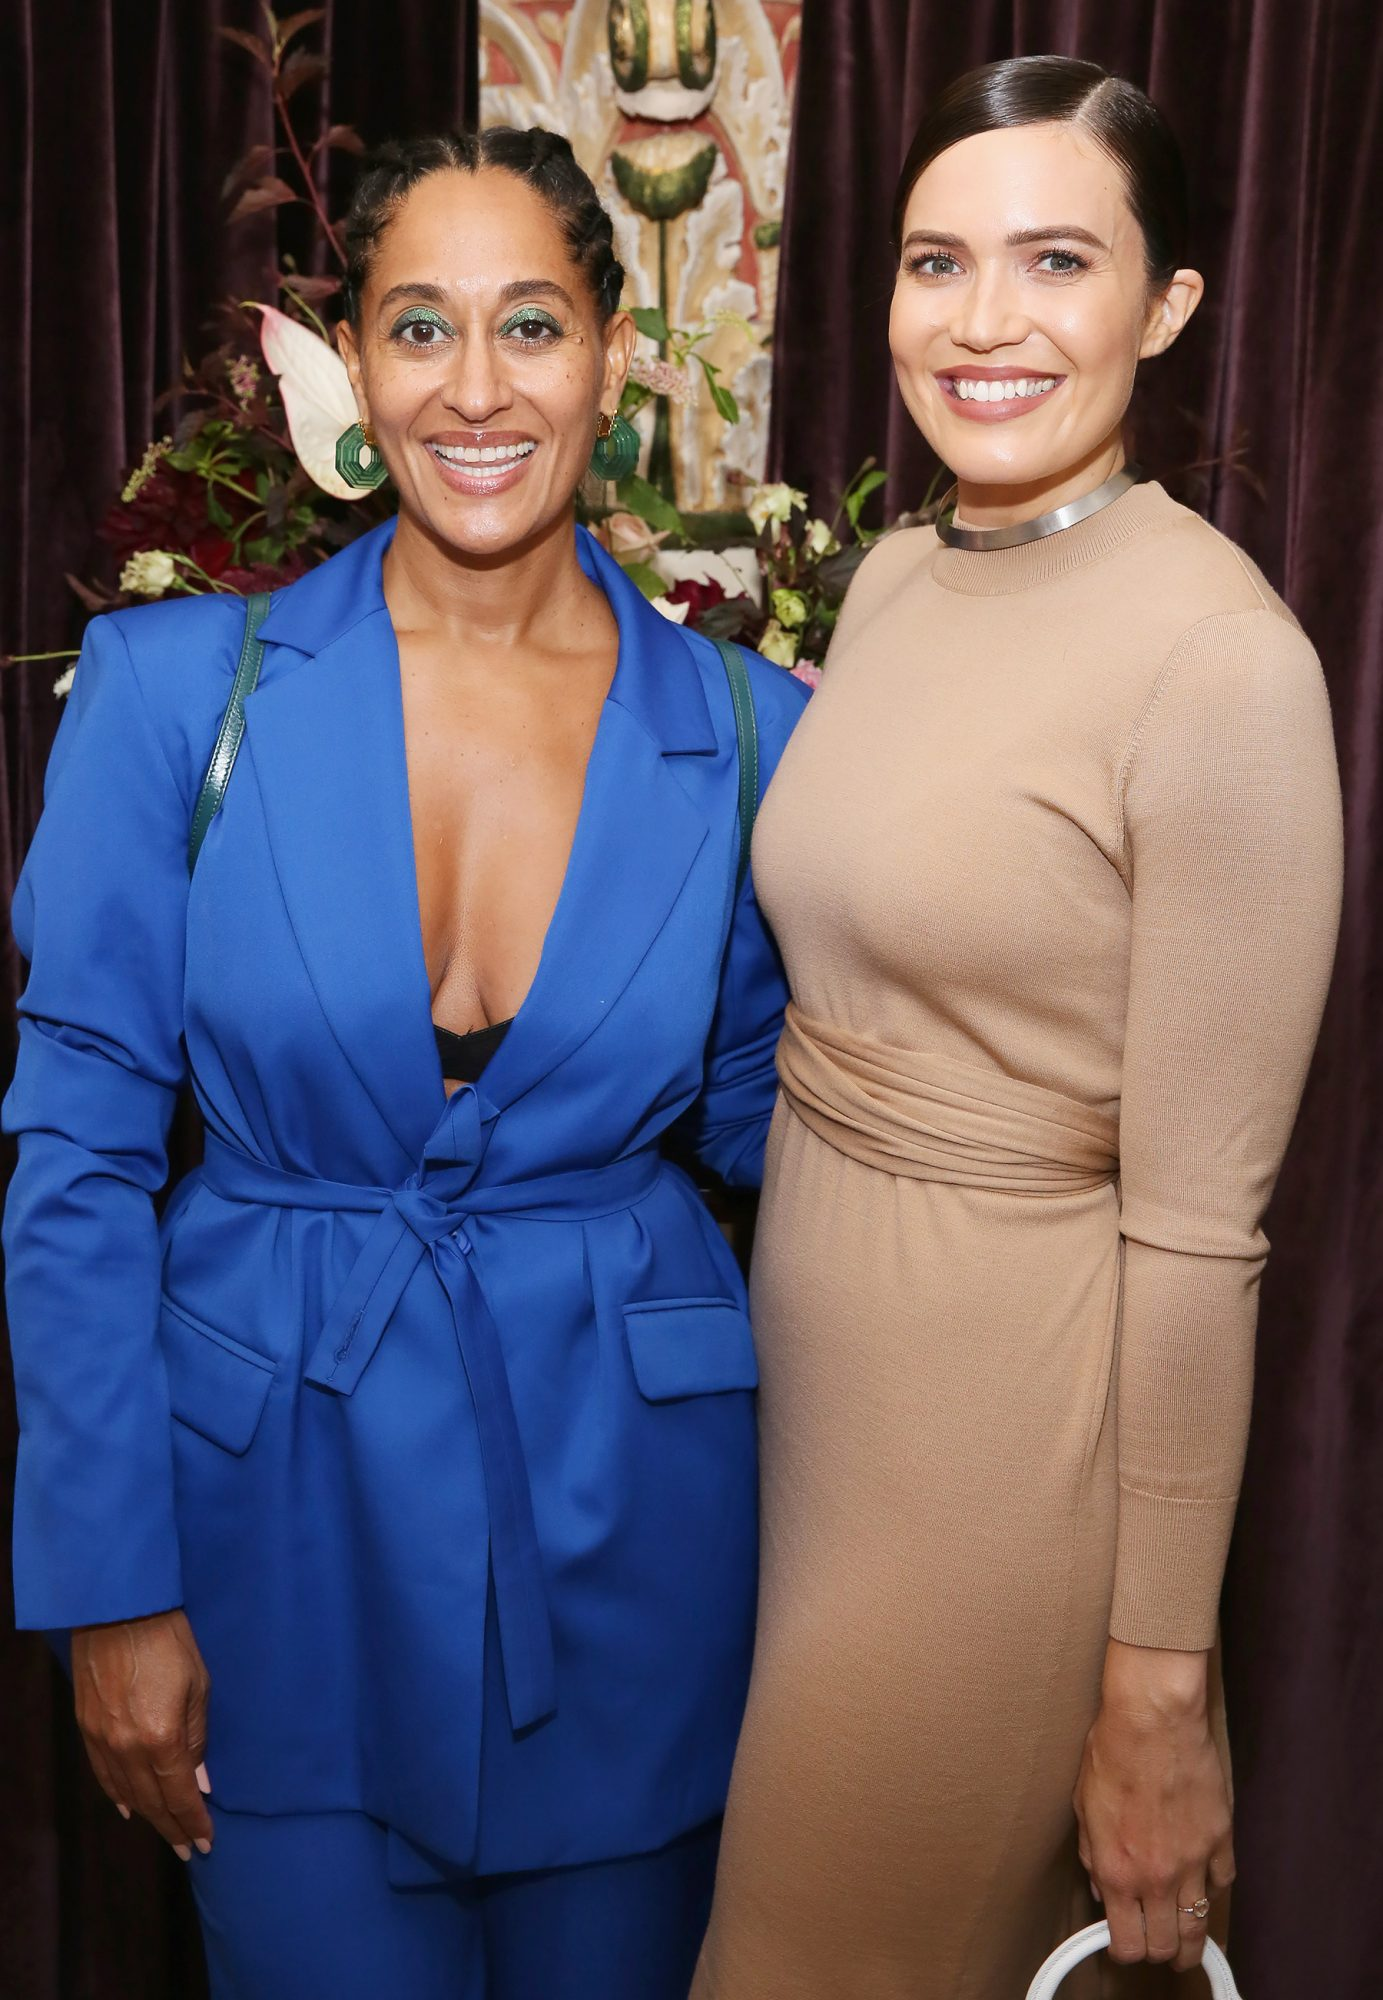 Harpers BAZAAR And The CDG Celebrate Excellence In Television Costume Design With A Private Dinner Presented By THE OUTNET.COM